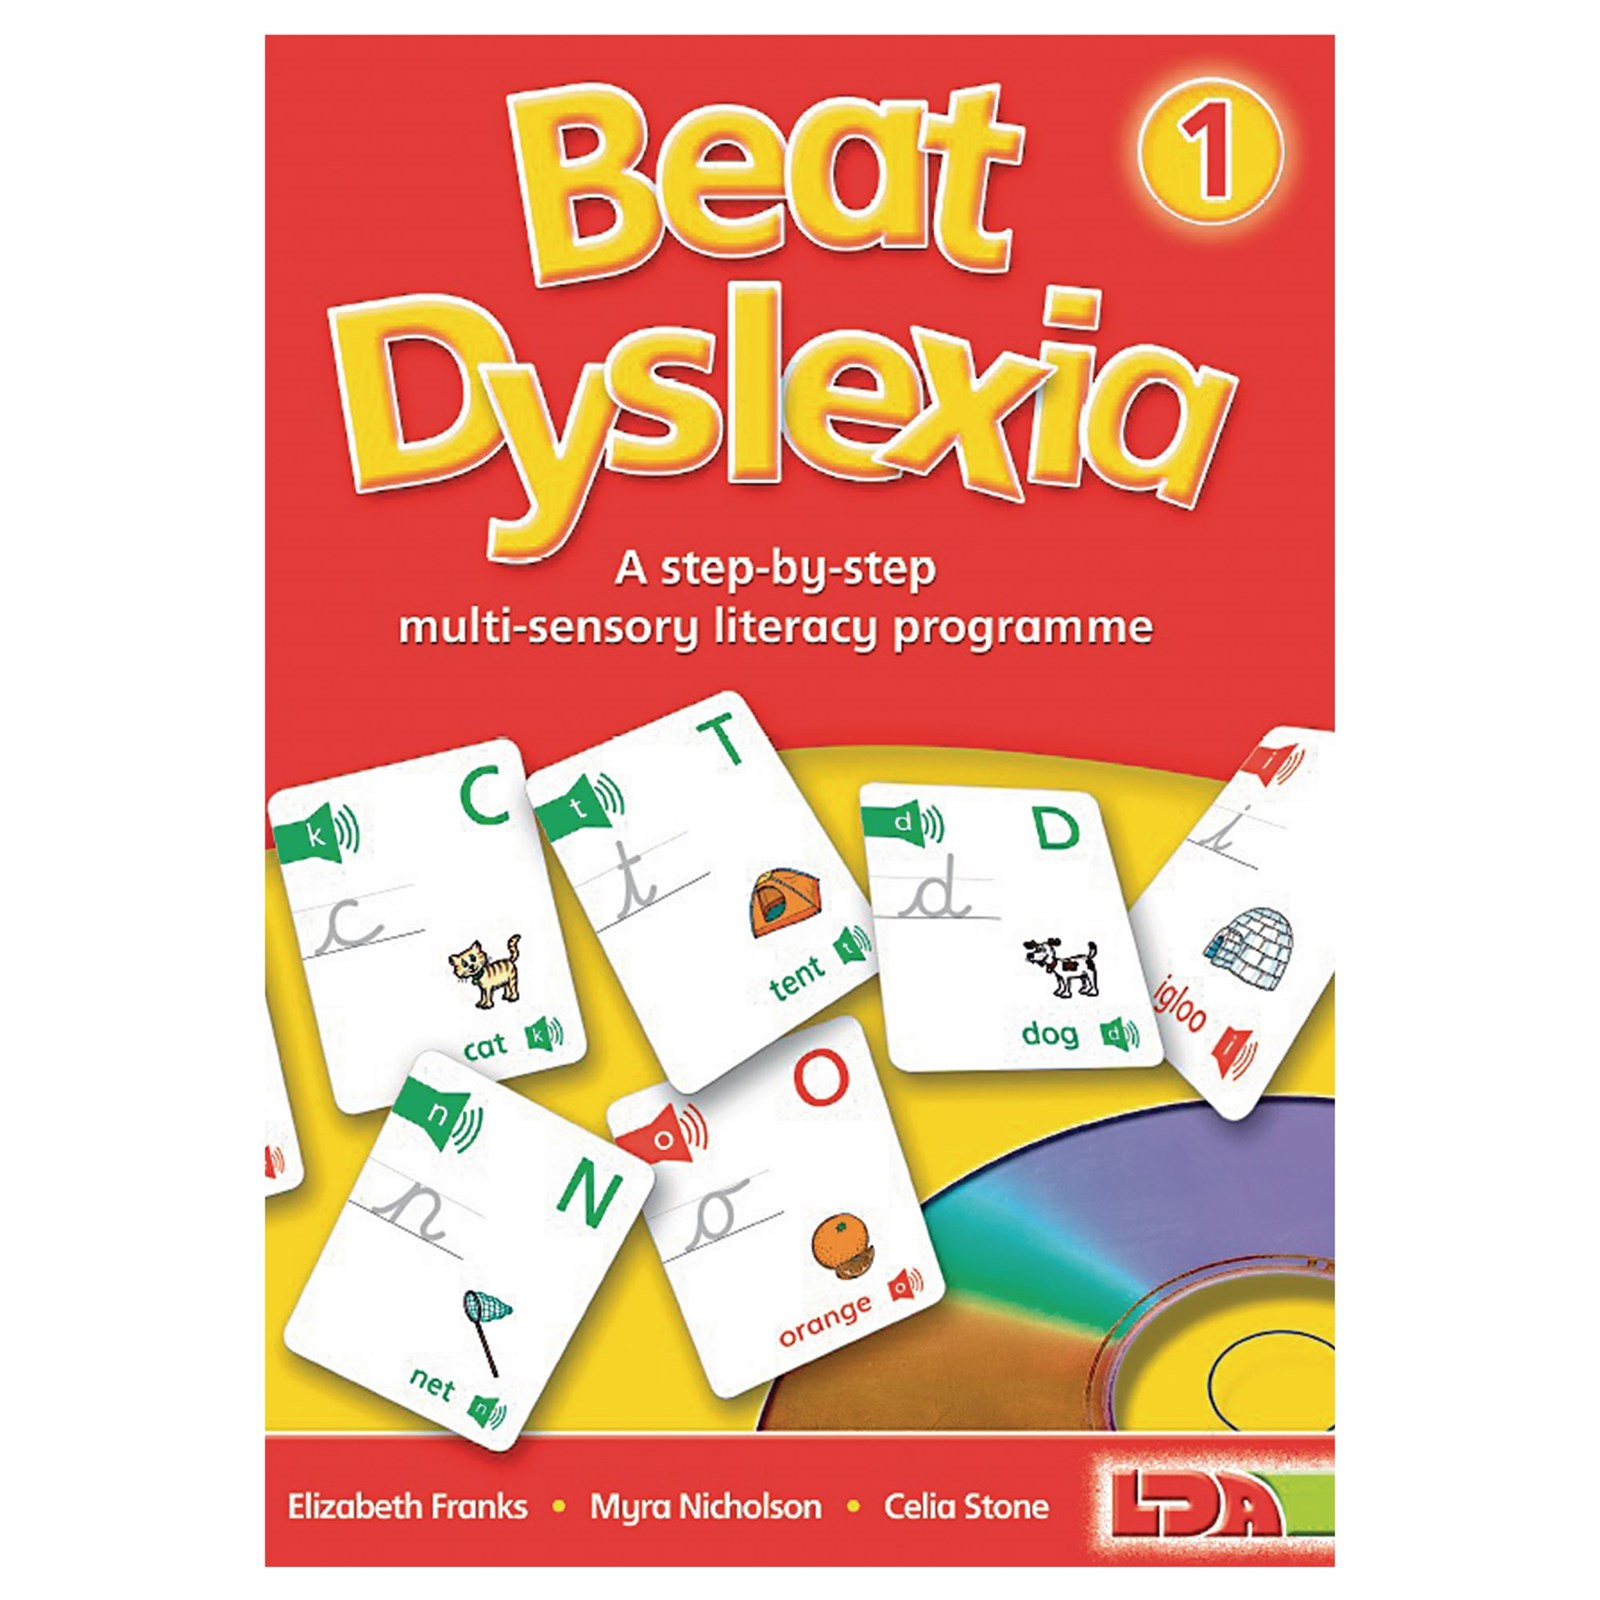 Verbal play, Beat adult dyslexia shes